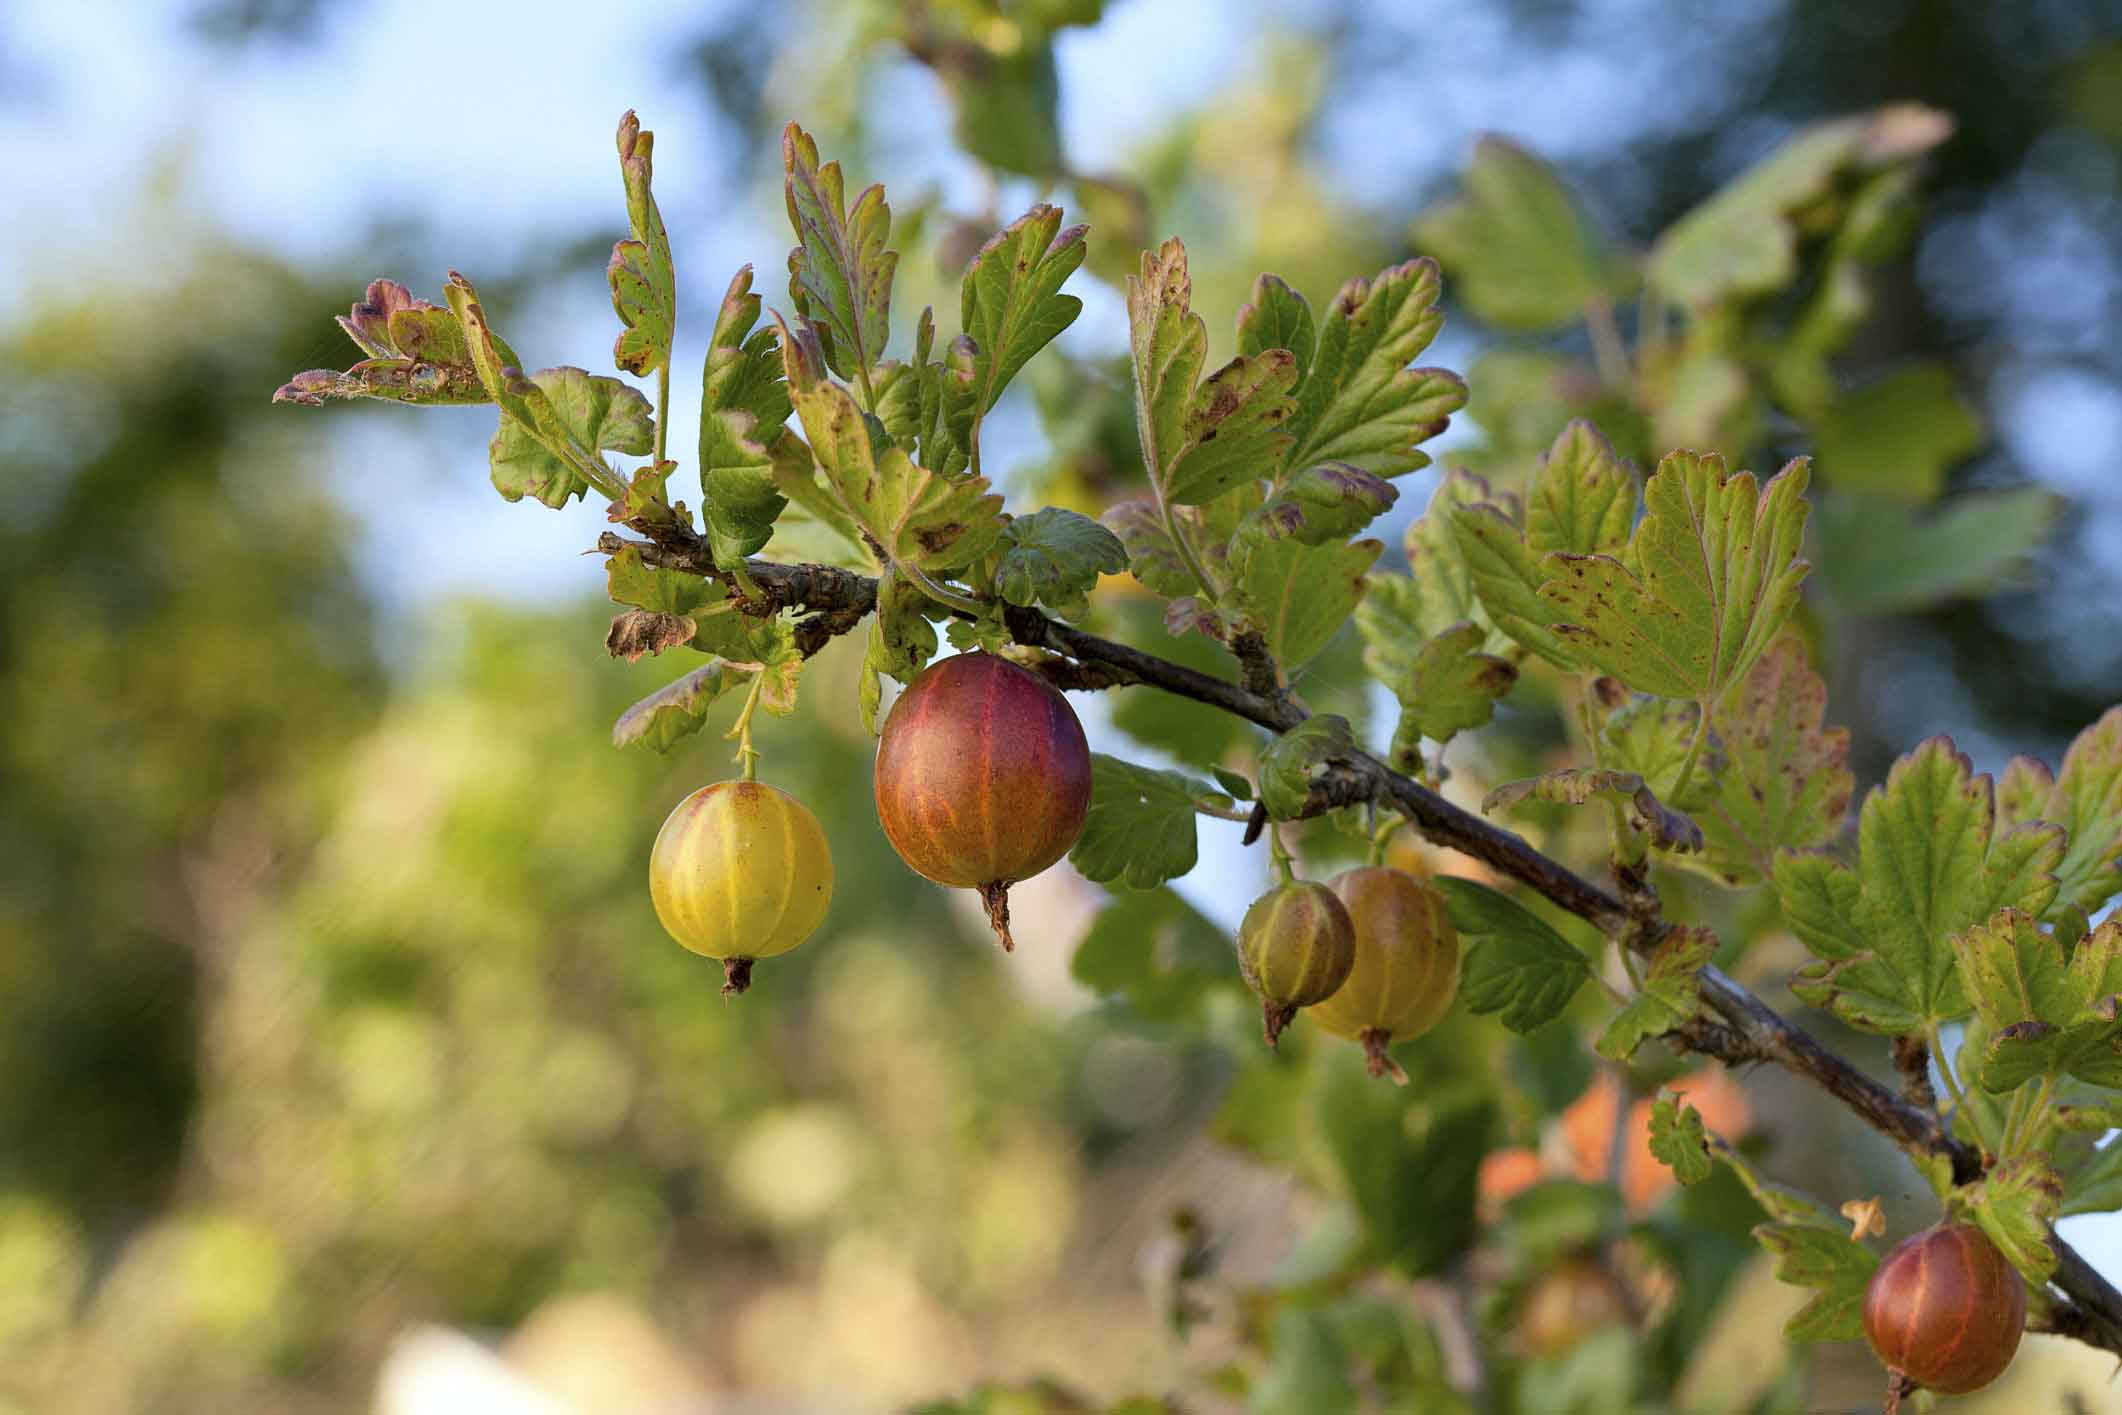 Gooseberries on tree branch